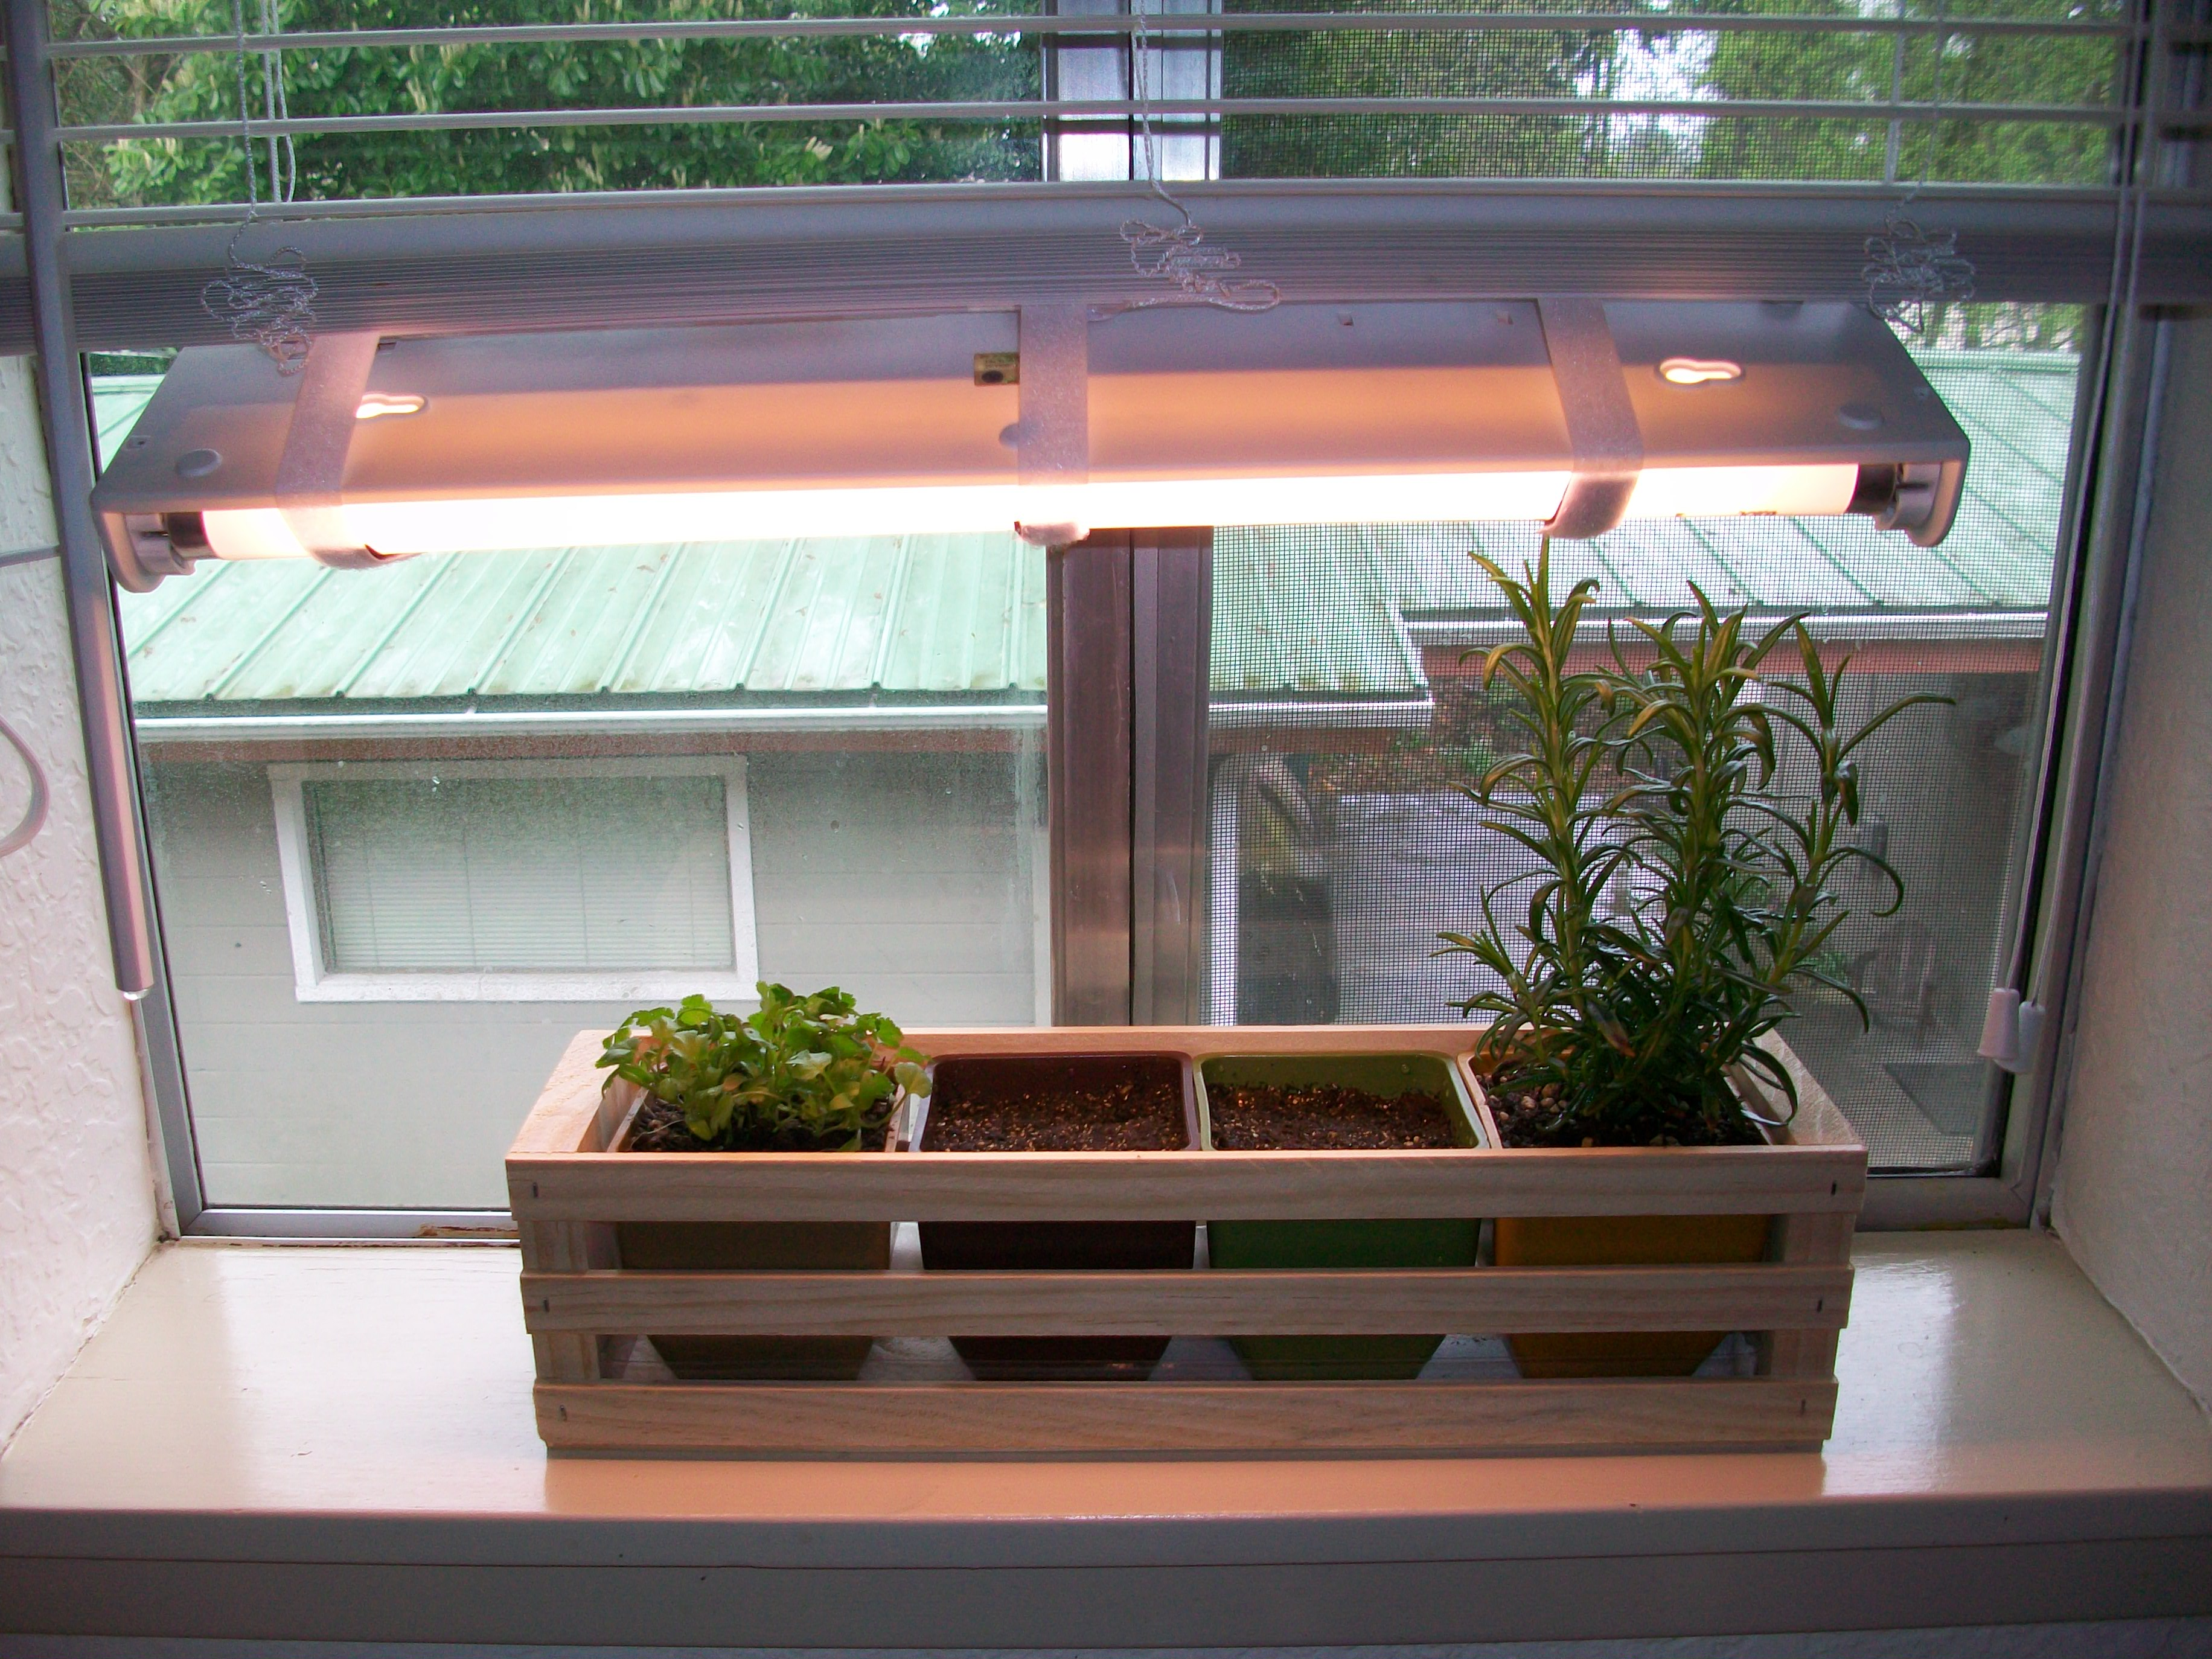 Simple Indoor Herb Garden With Adjustable Grow Light 5 Steps With Pictures Instructables